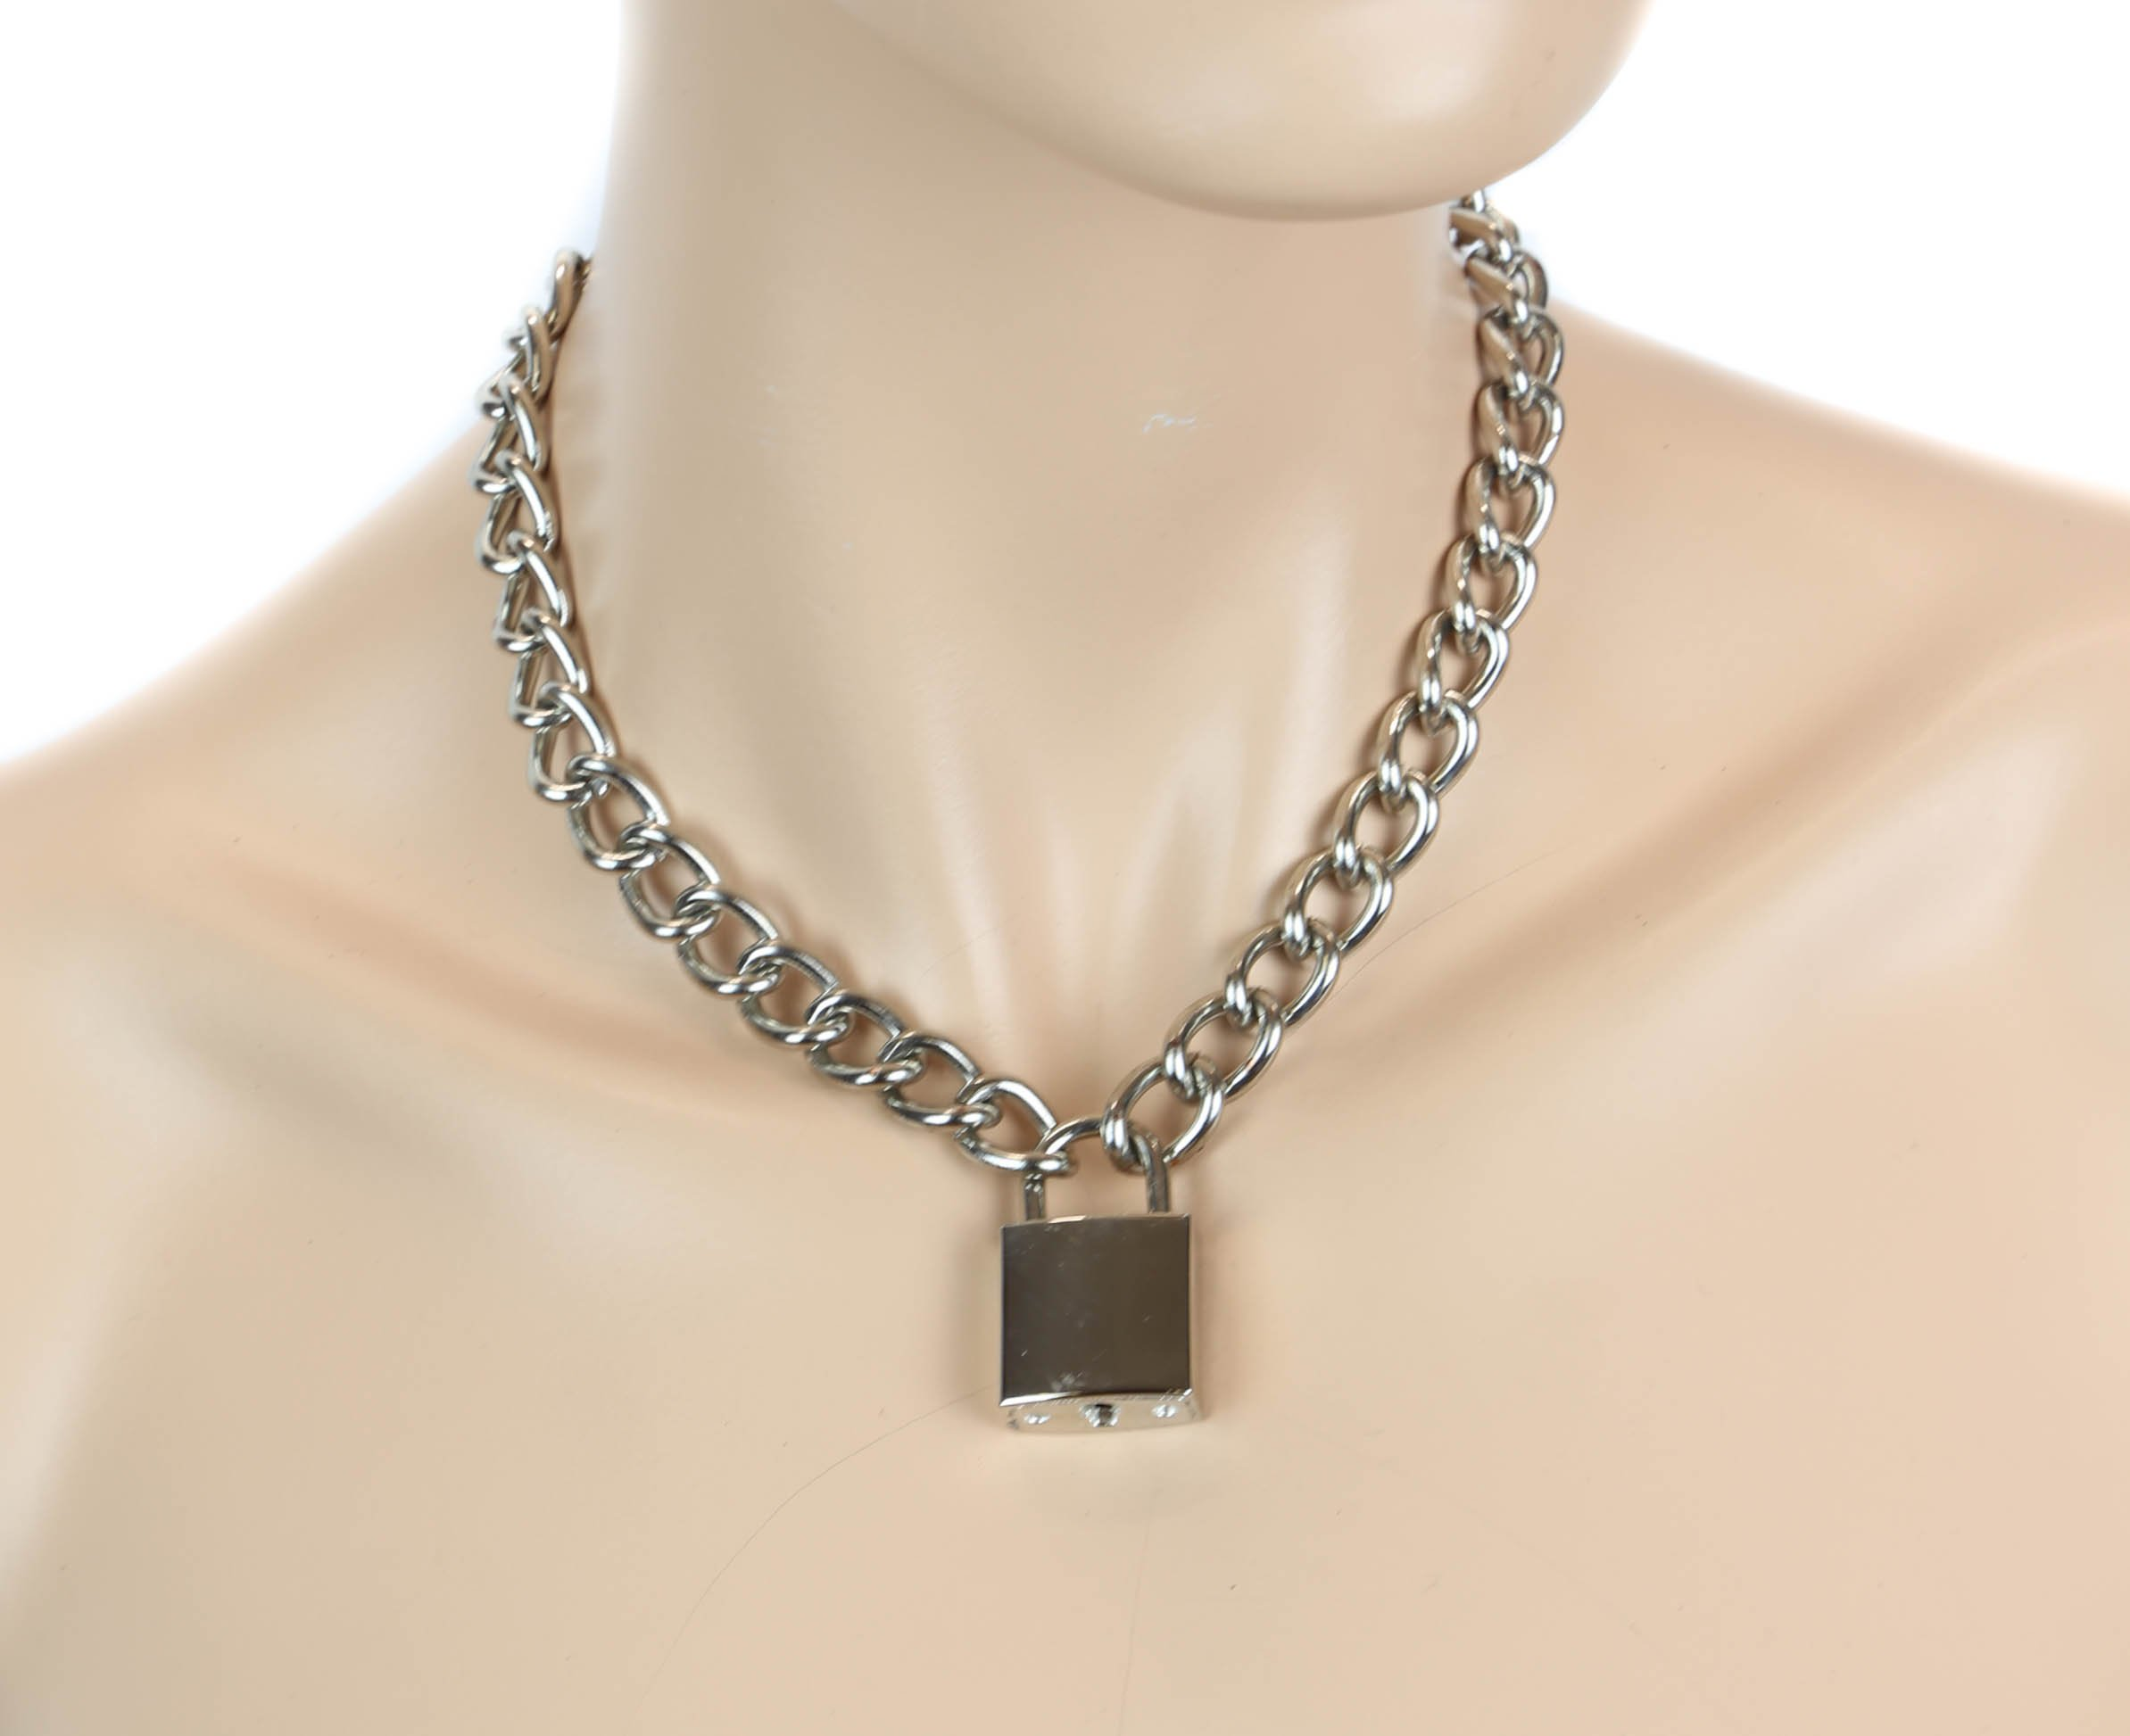 Silver Pad Lock Gothic Necklace Pendant Regular Chain Real Lock